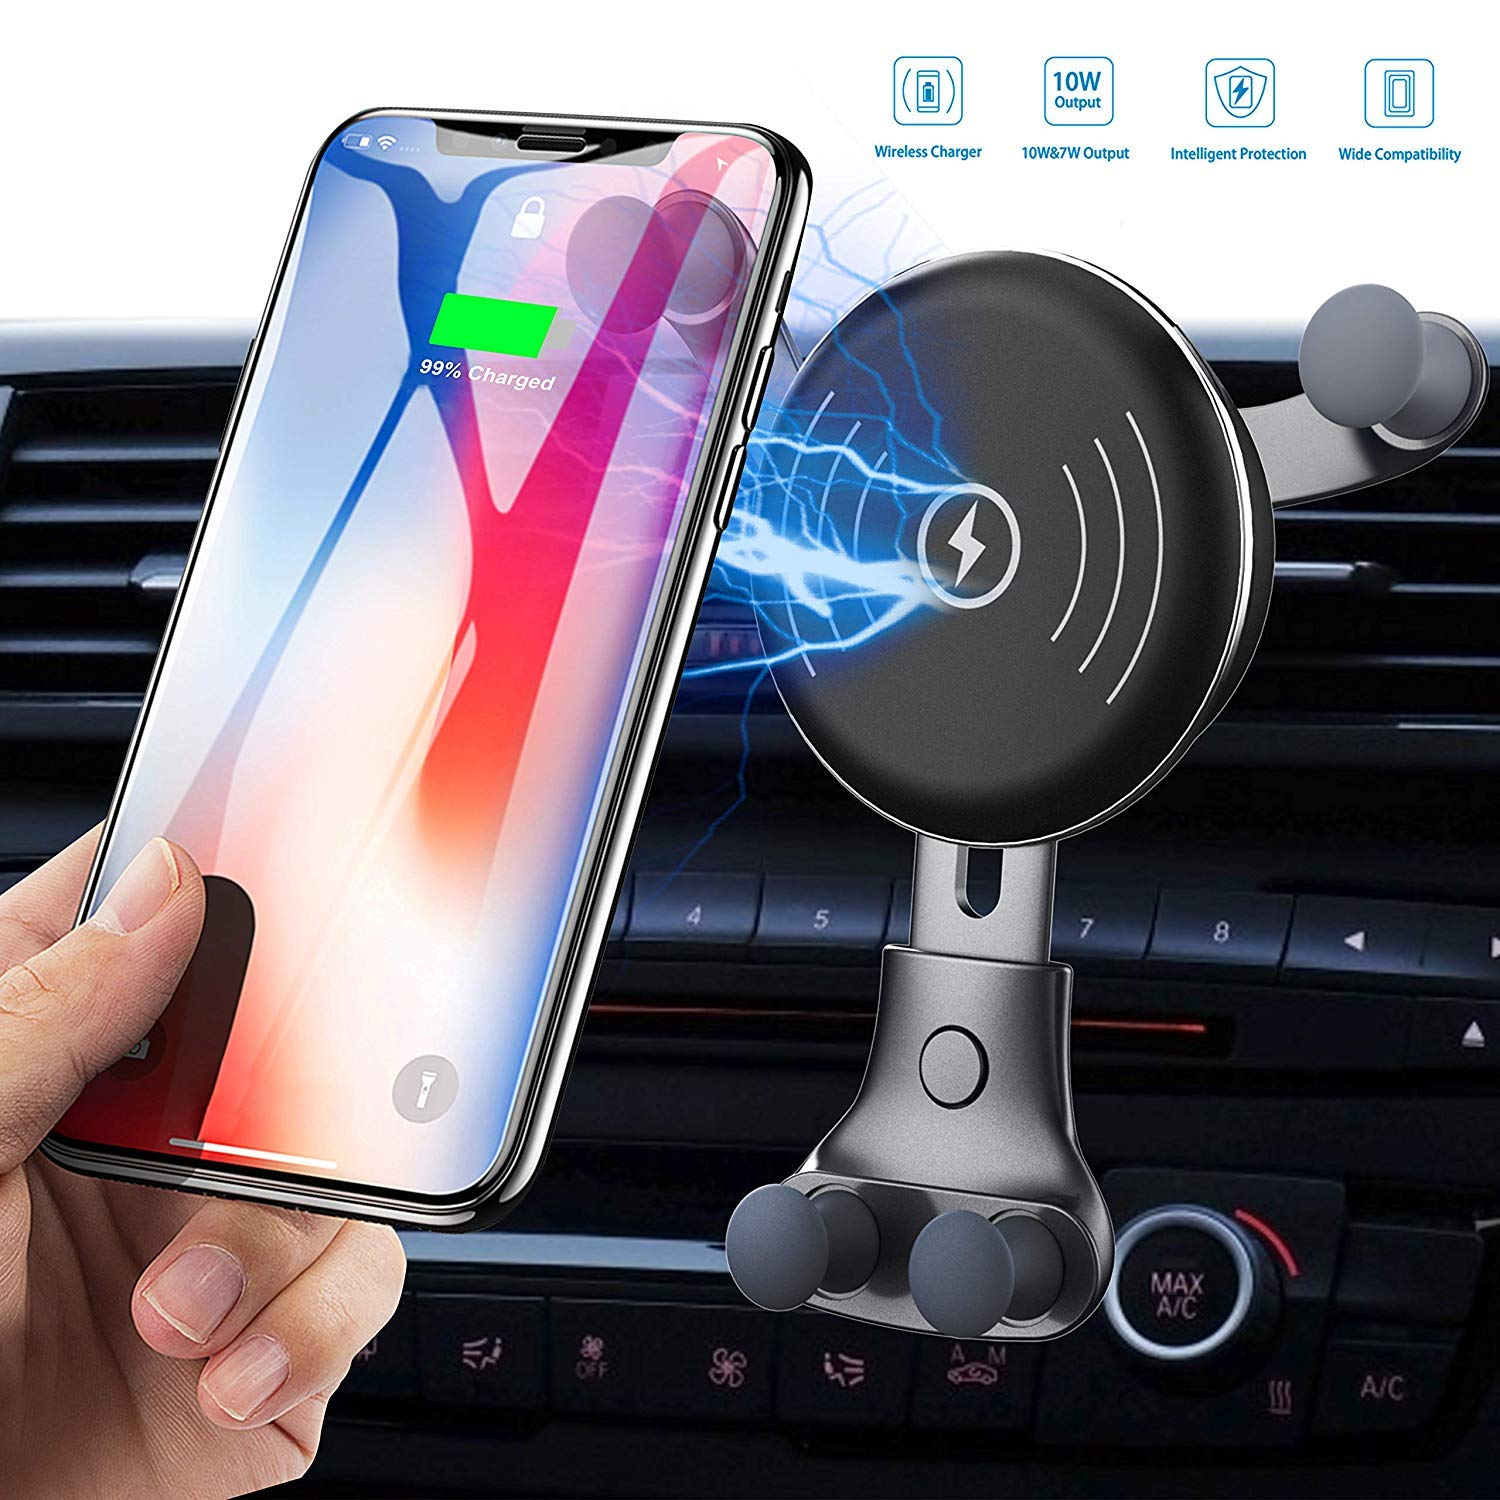 Car Charger, Air Vent Phone Holder, Wireless Car Kit, 10W Compatible for Samsung Galaxy S9 811recar14 by BESTHING